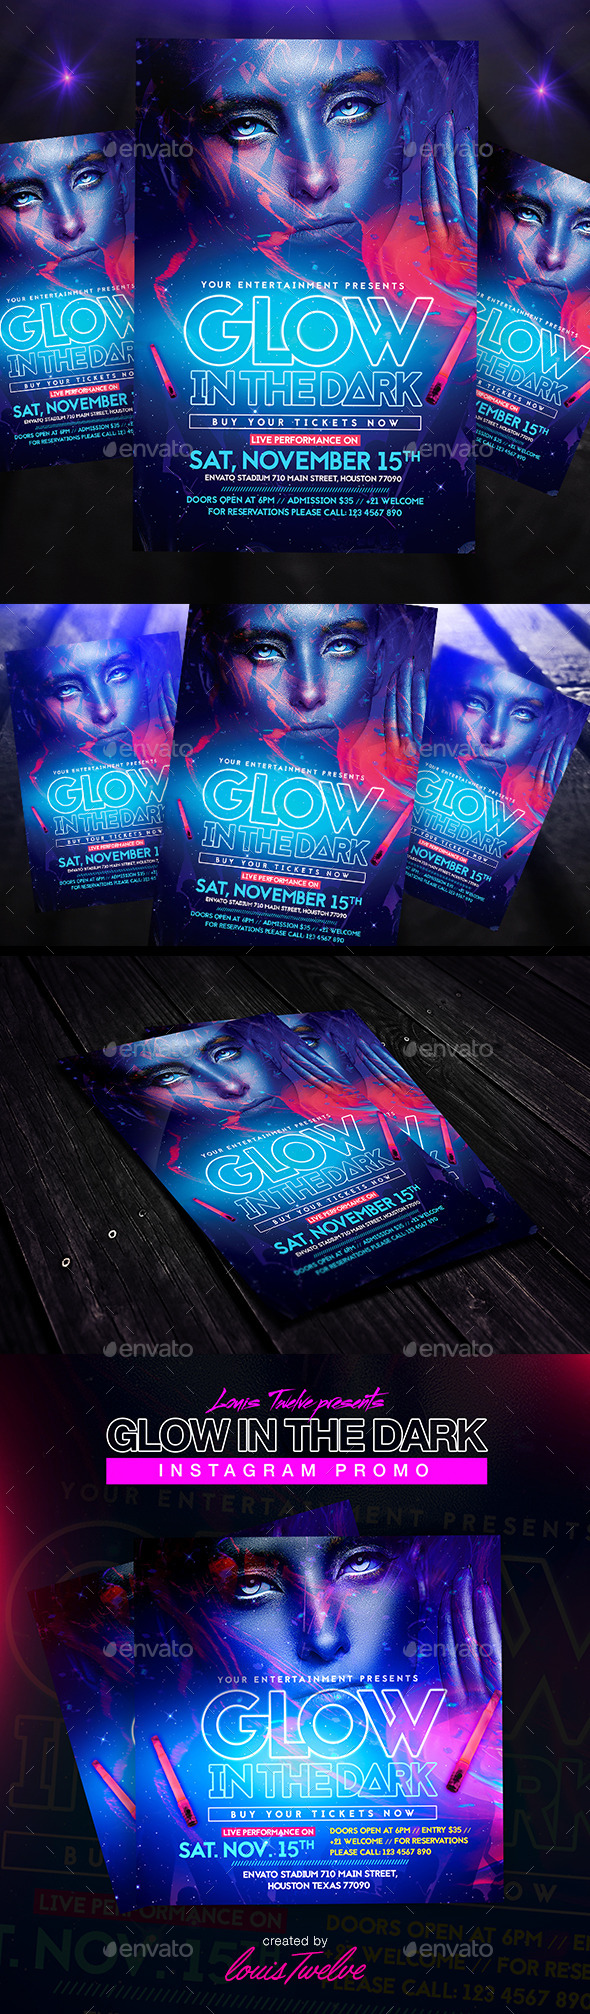 Glow in the Dark | Flyer + Instagram Promo - Clubs & Parties Events